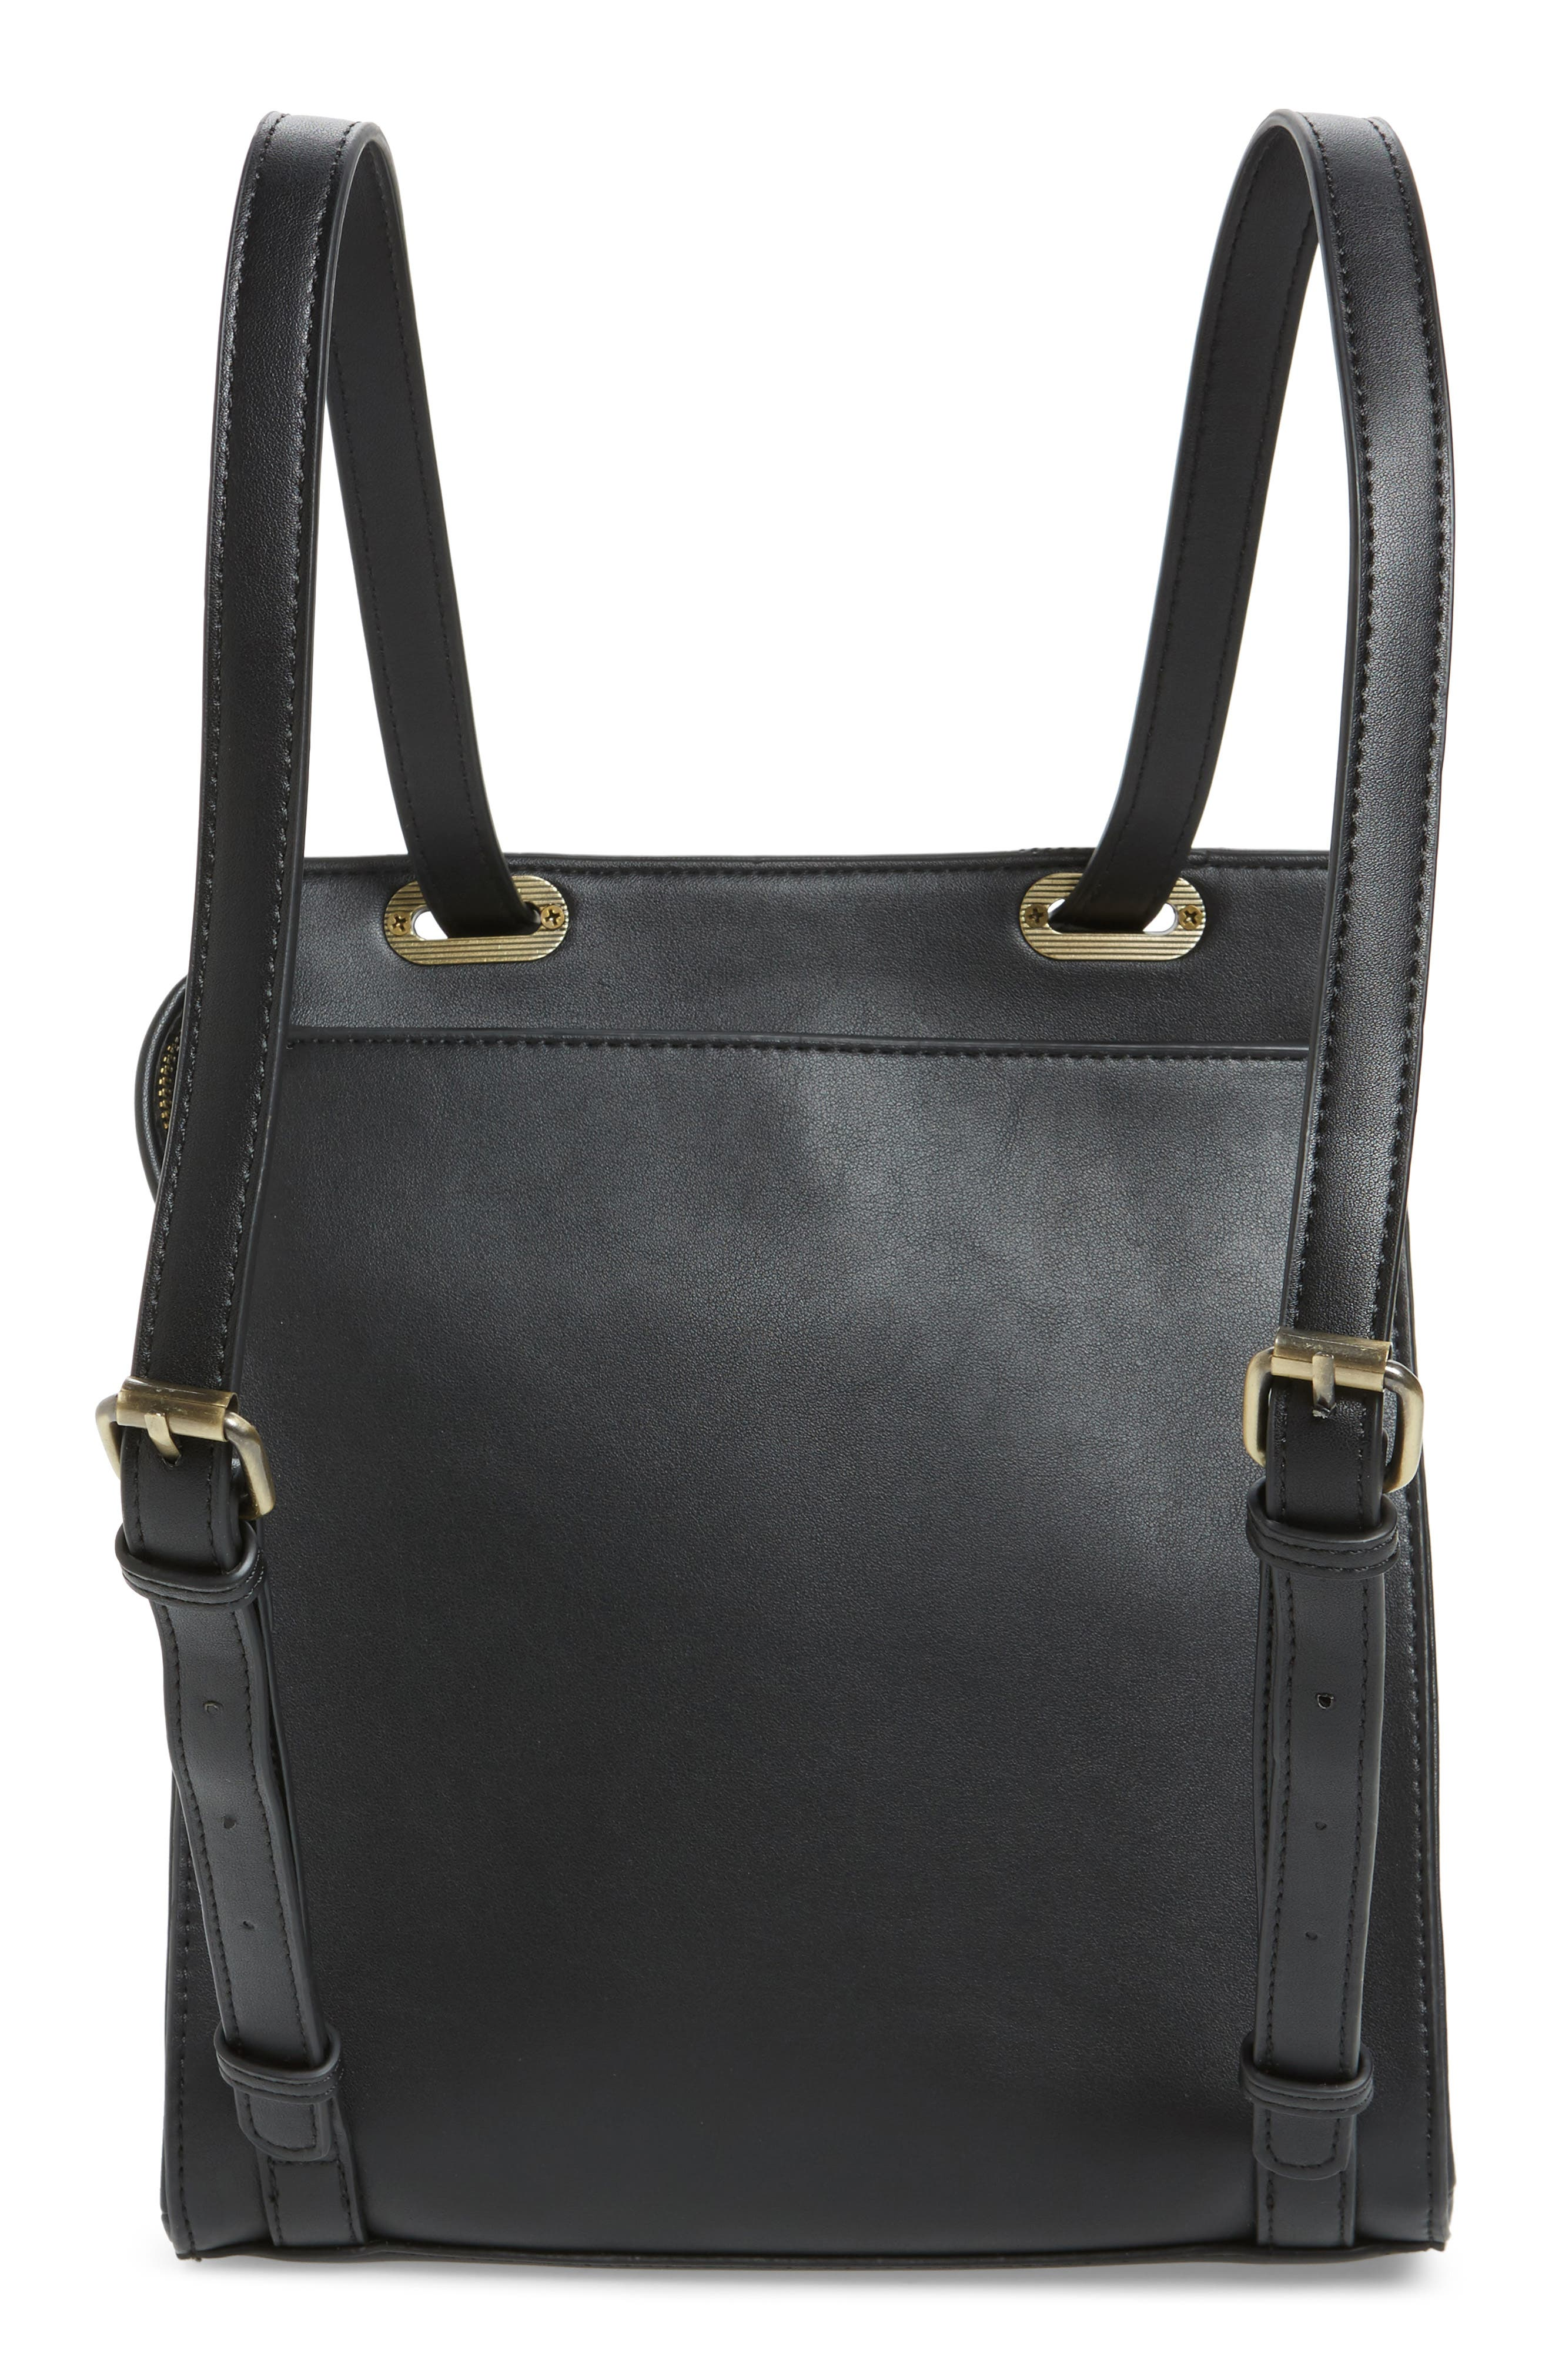 STREET LEVEL, Faux Leather Convertible Backpack, Alternate thumbnail 5, color, 002